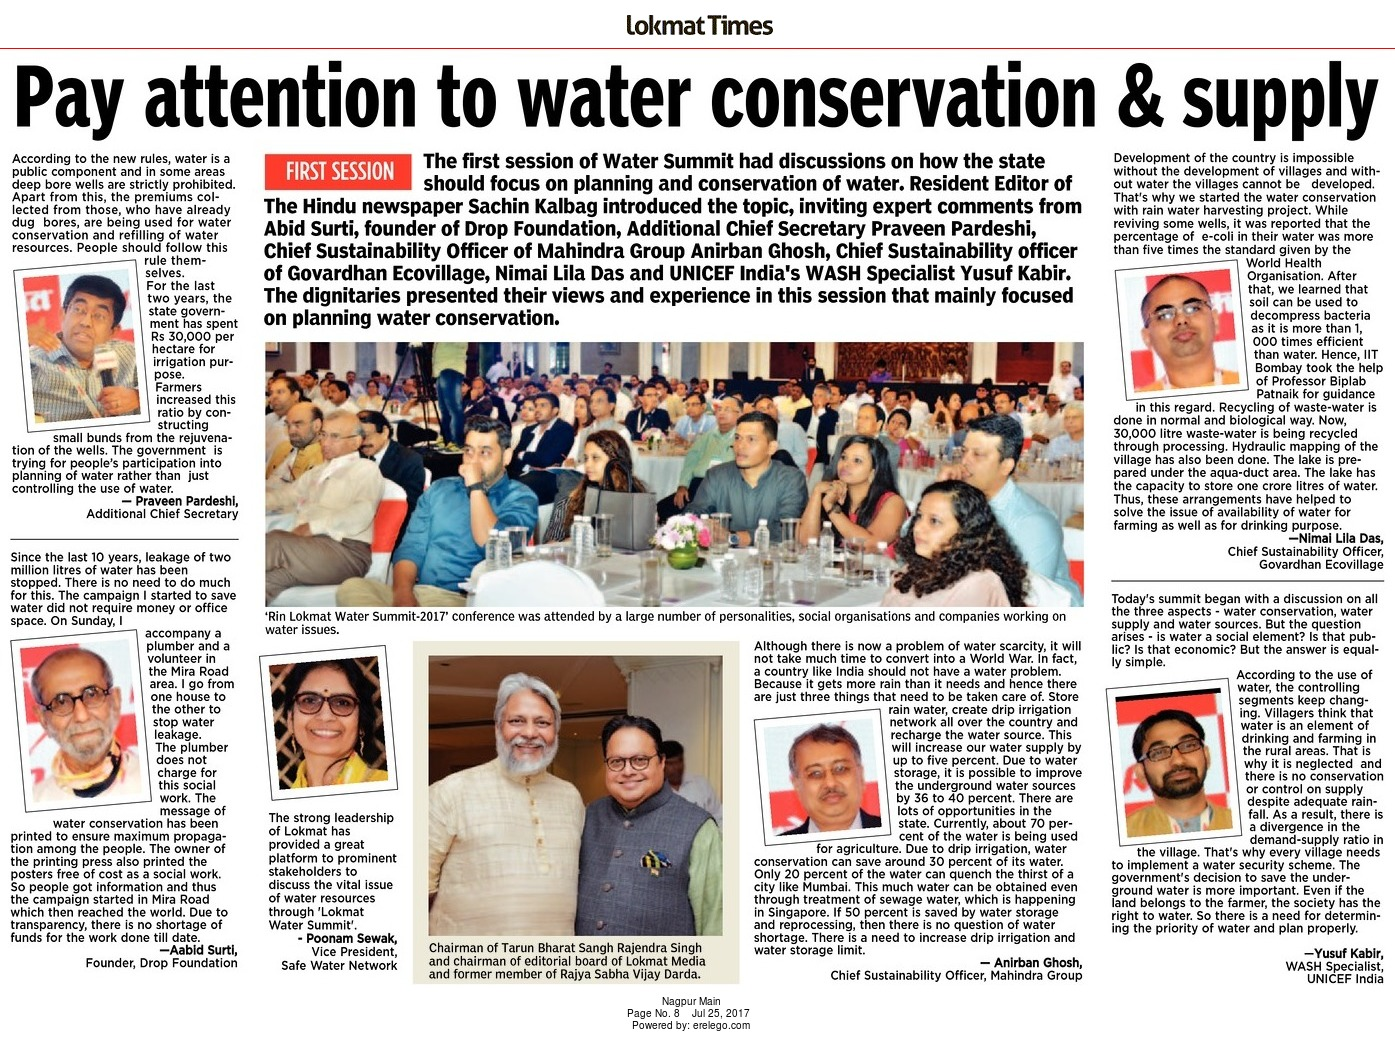 Pay attention to water conservation & supply